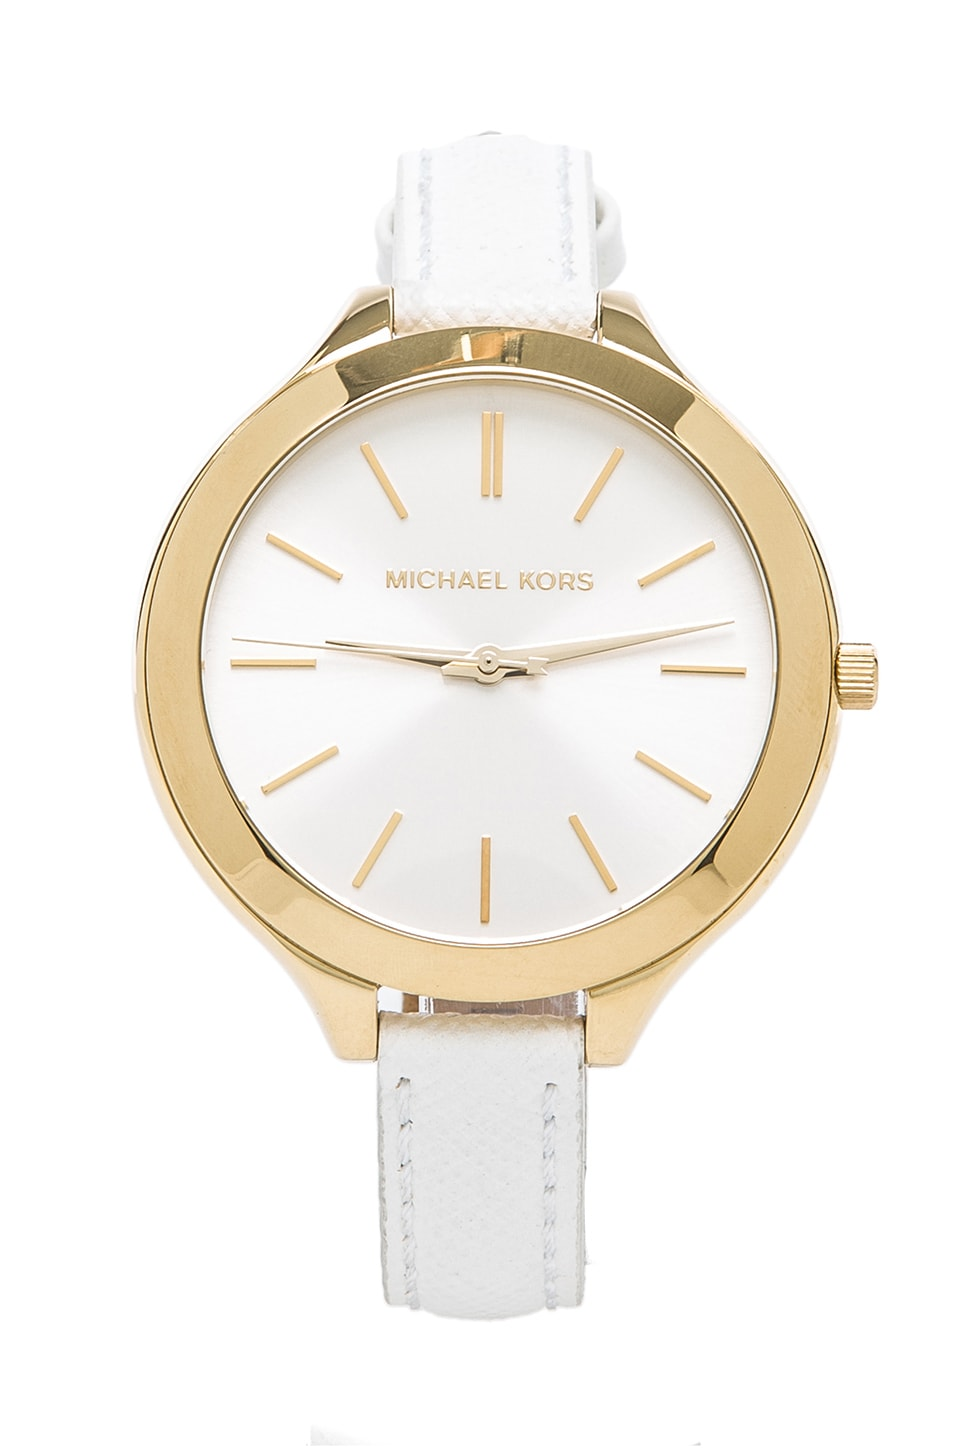 Michael Kors MK2273 in White